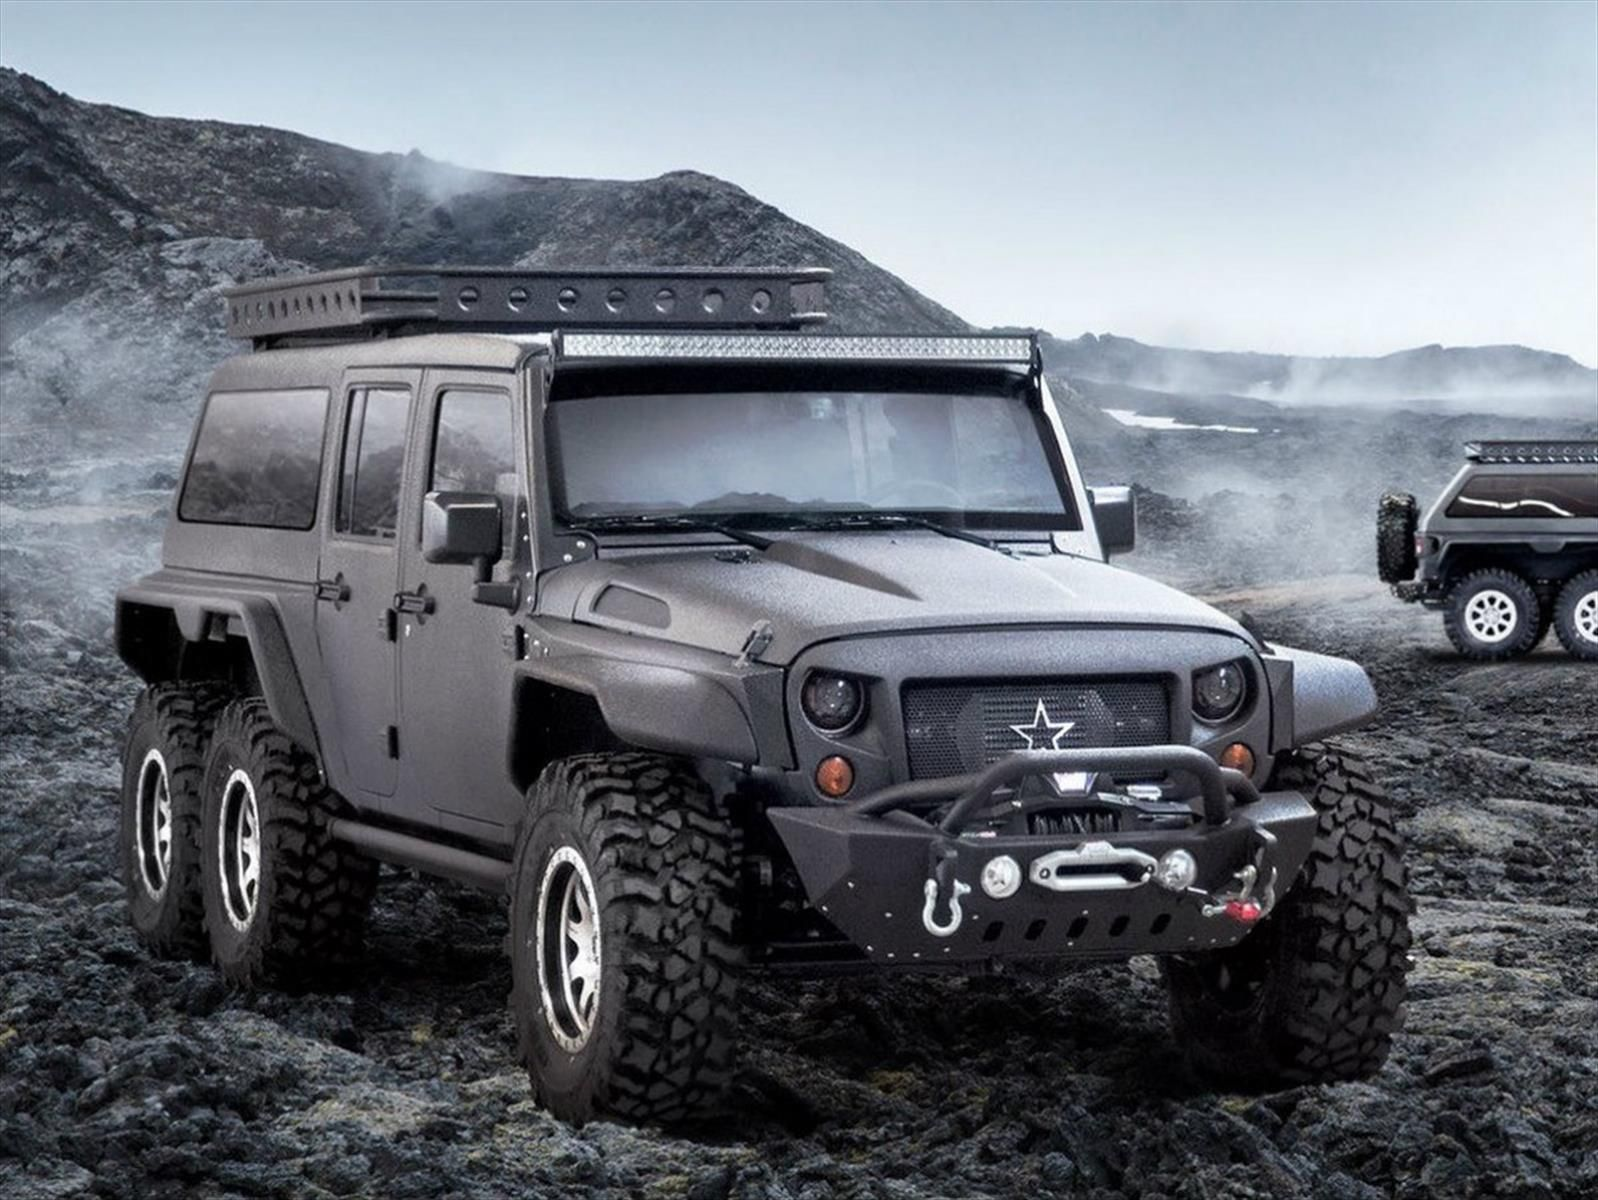 llega el jeep wrangler 6x6 tiembla el amg 6x6 d mercedes. Black Bedroom Furniture Sets. Home Design Ideas